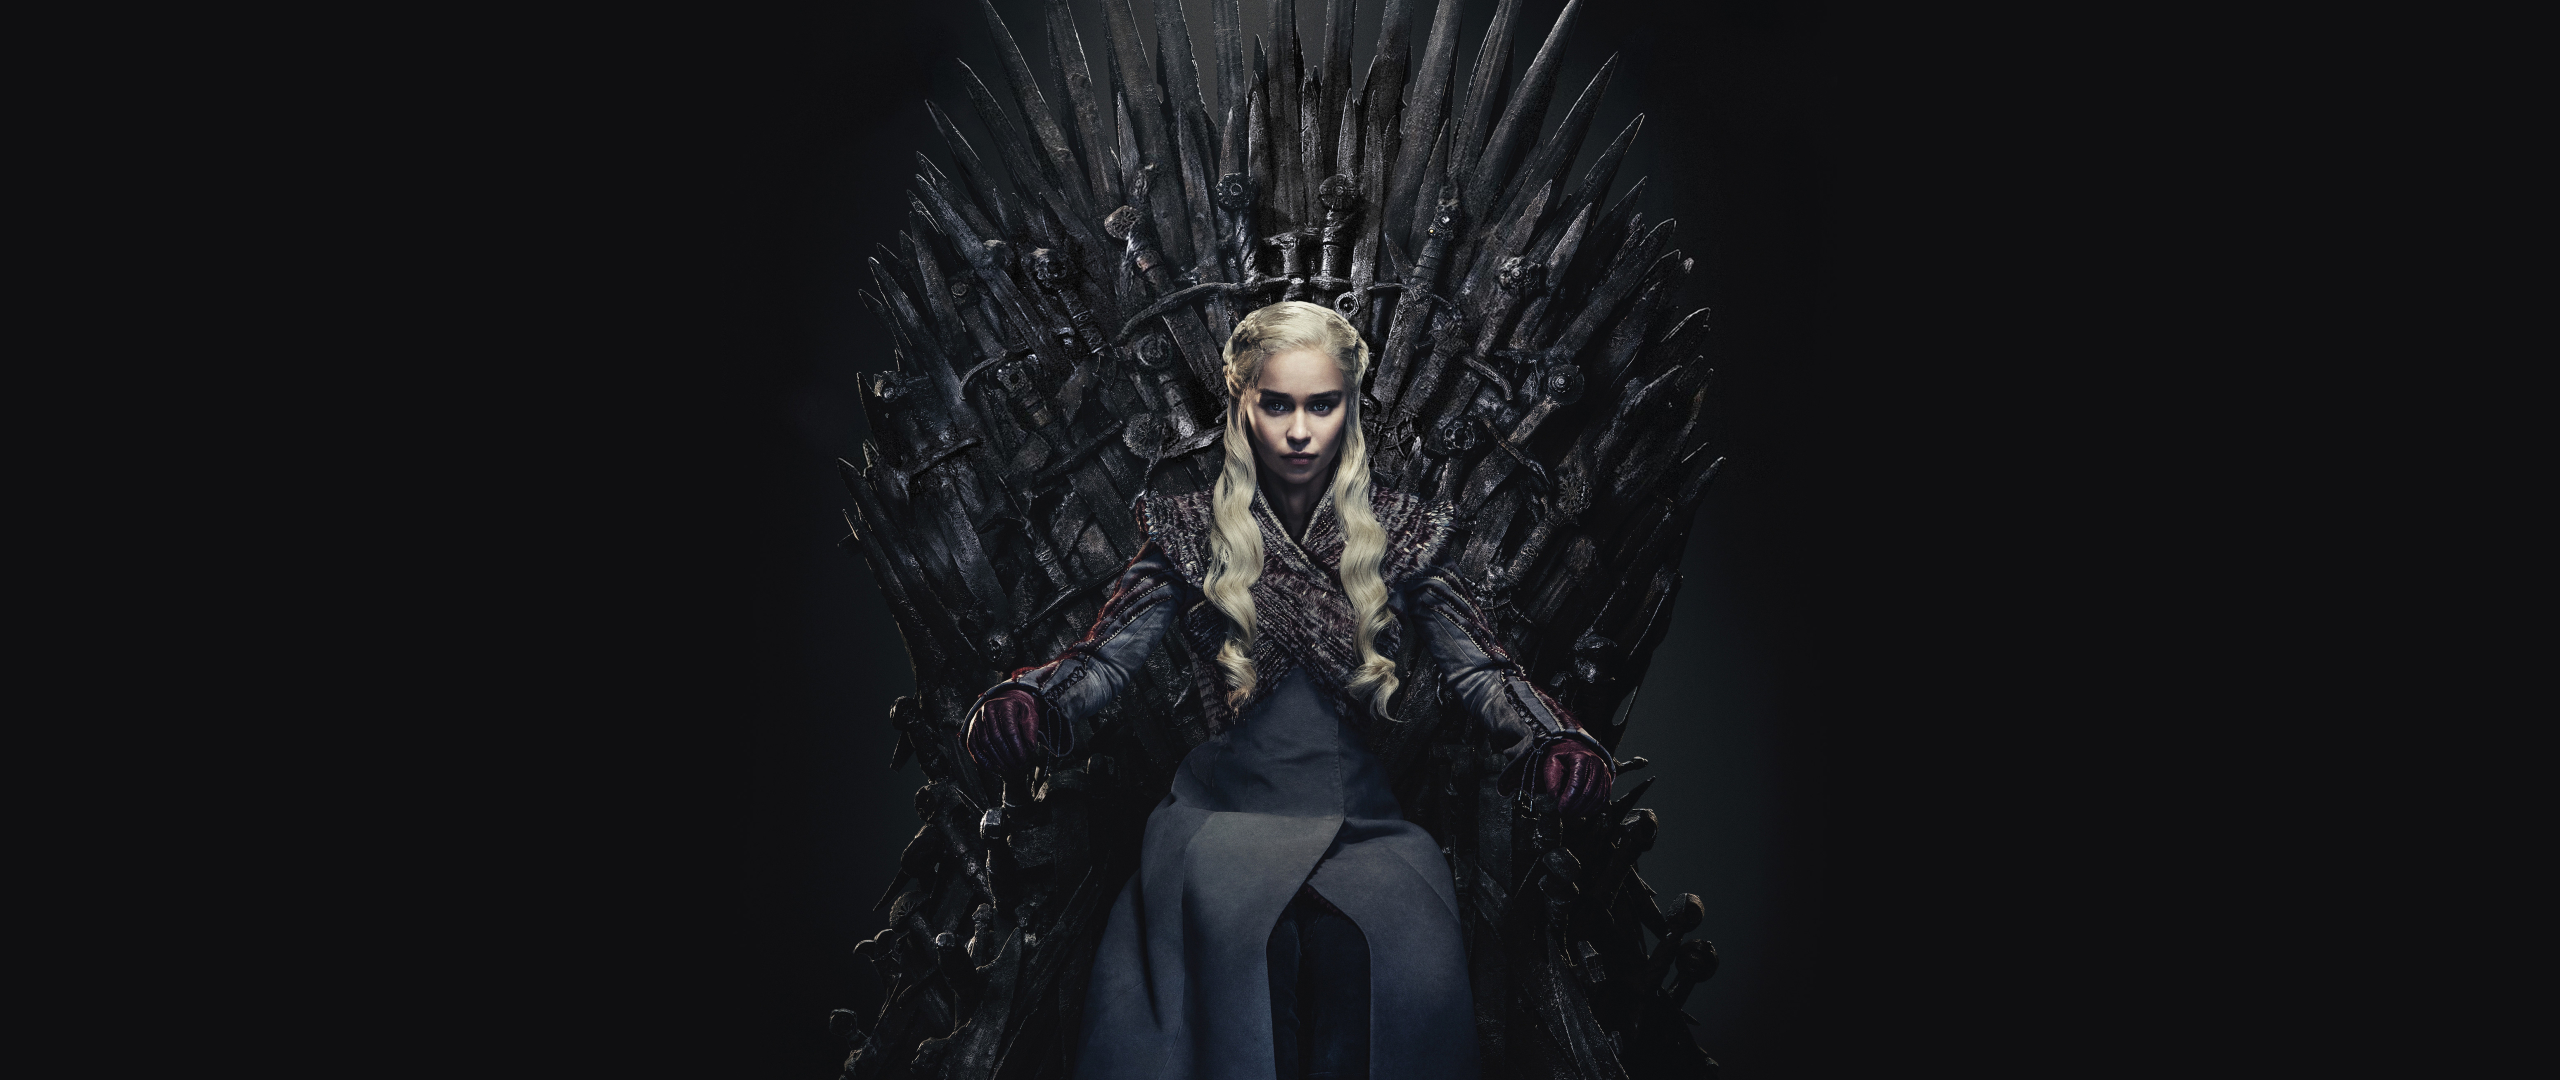 Daenerys Targaryen Queen Of the Ashes in The Iron Throne Wallpaper in 2560x1080 Resolution